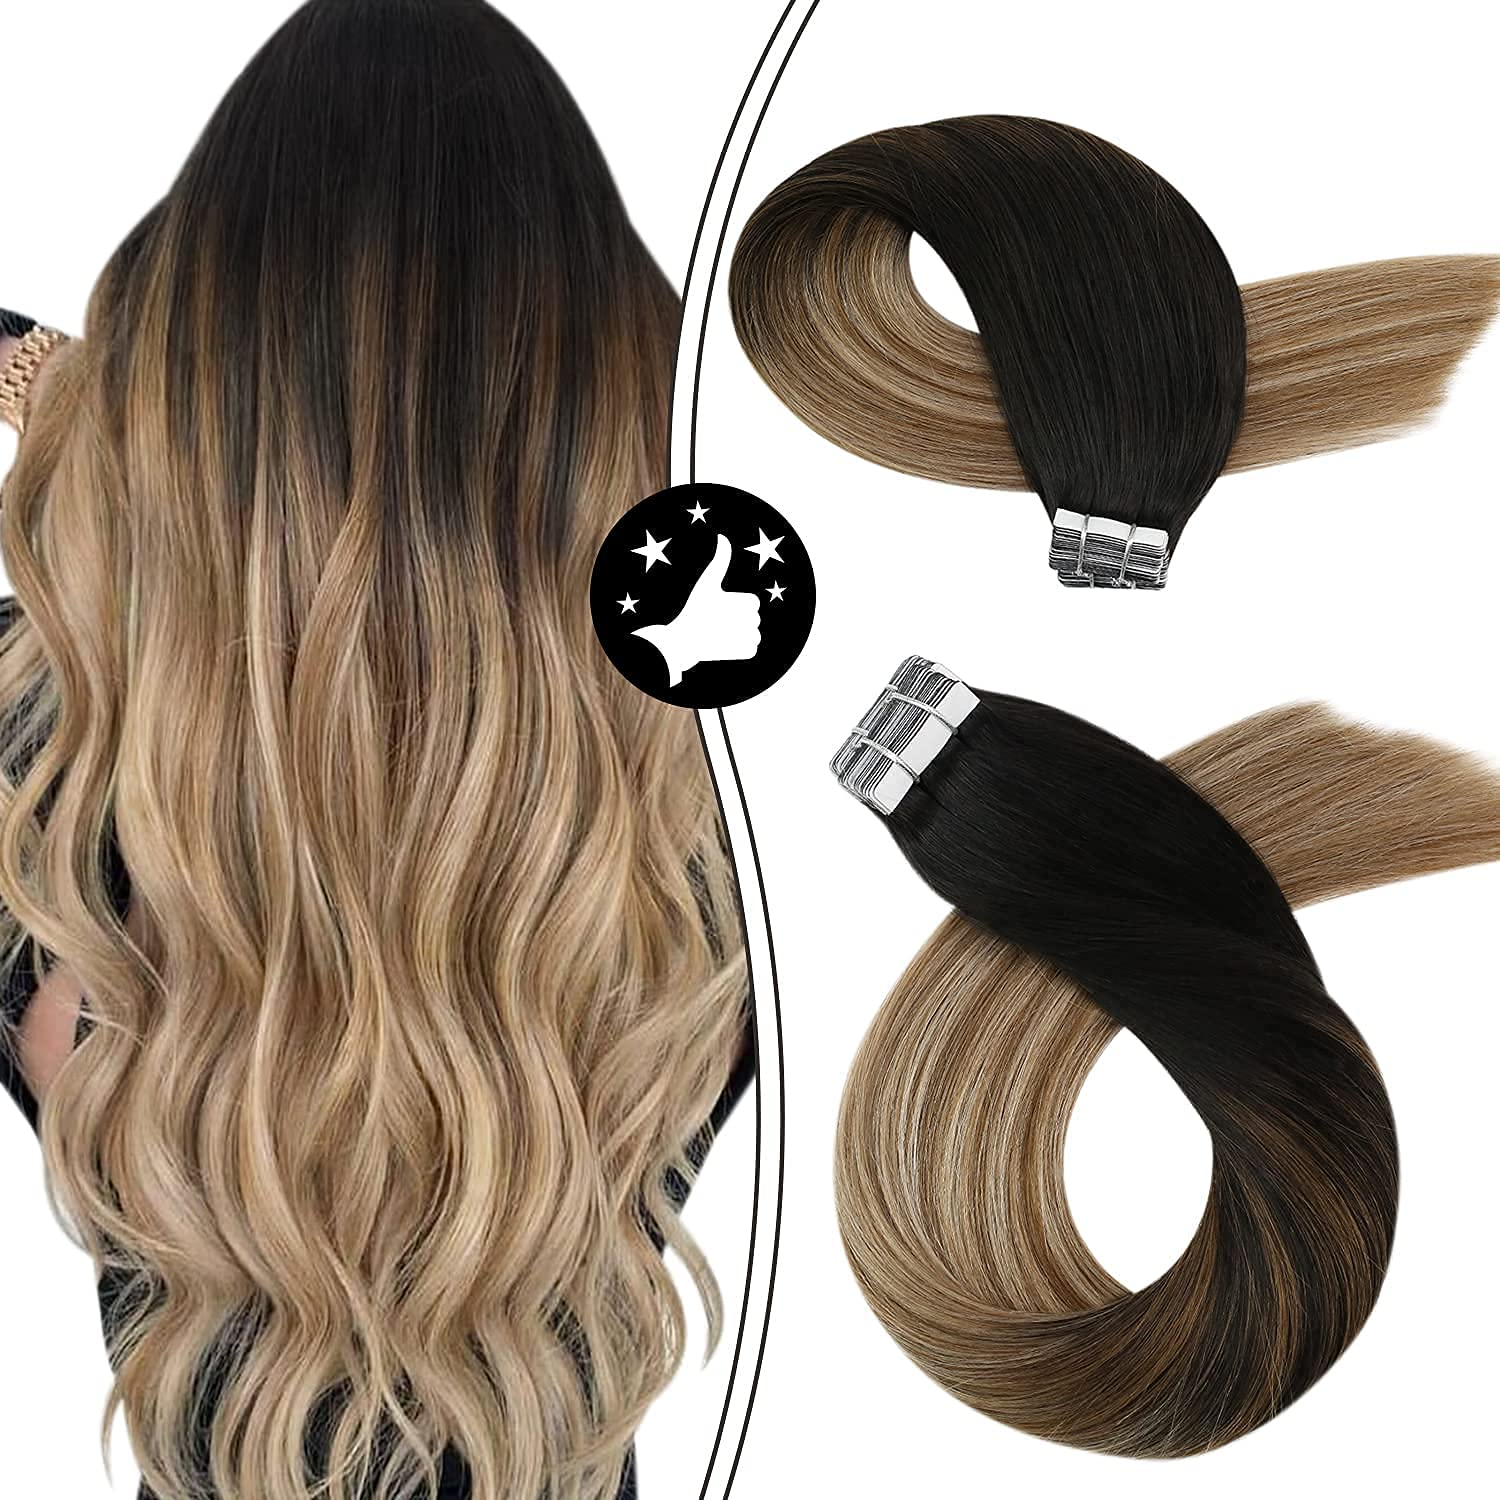 Moresoo Tape Recommendation in Hair Extensions Brand new Balayage Remy Human Ex